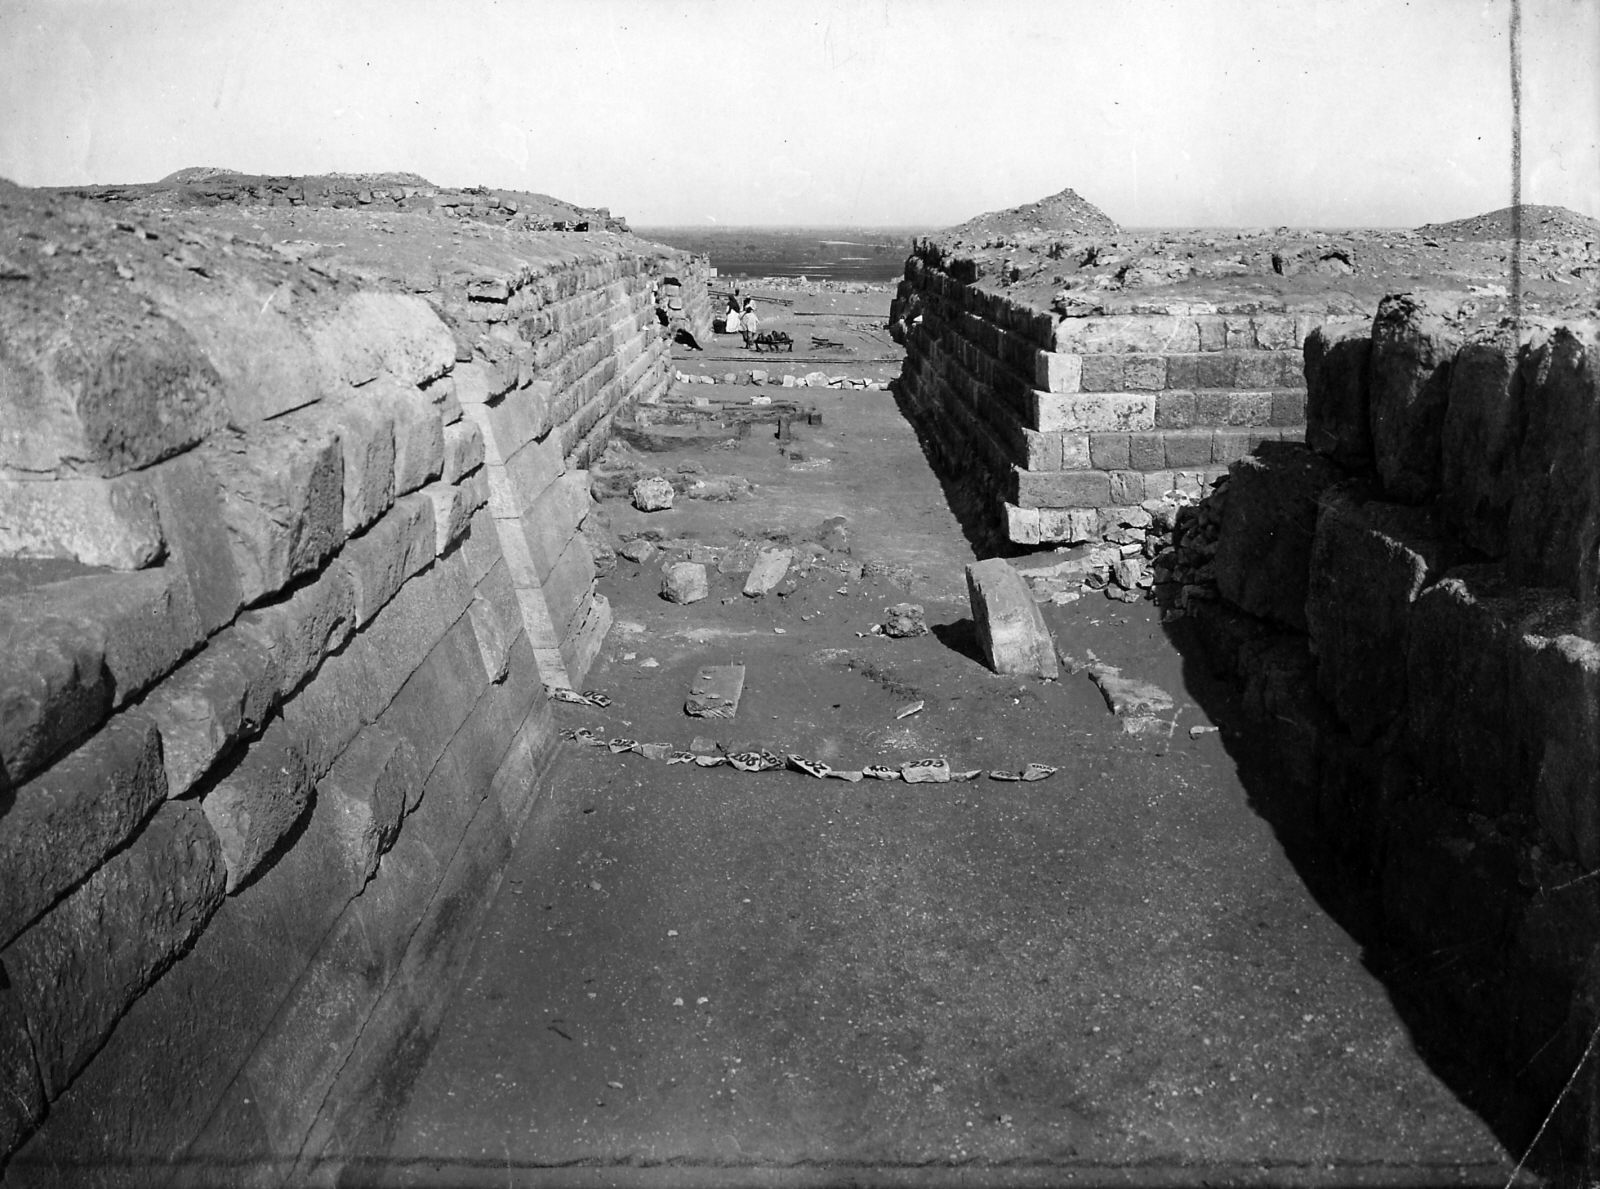 Western Cemetery: Site: Giza; View: G 4240, G 4340, G 4250, G 4350